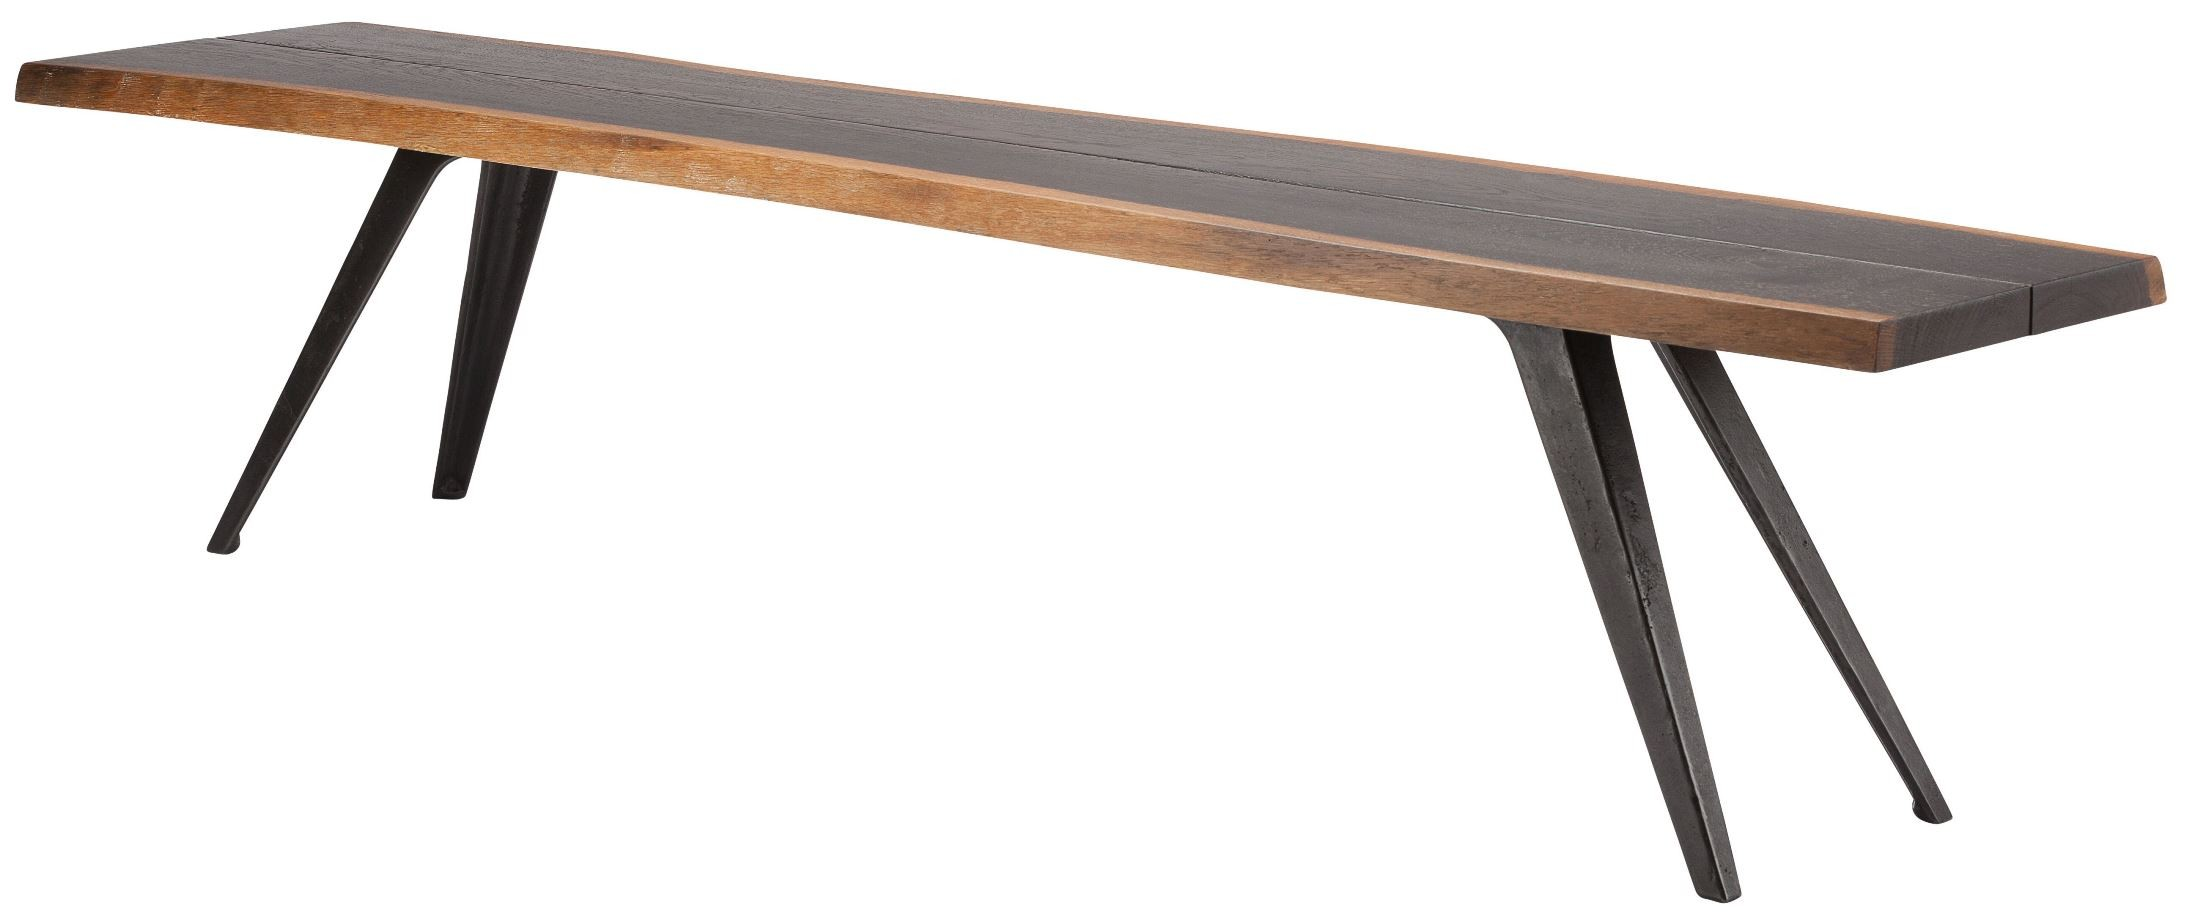 home vega 75 seared wood and black metal dining bench